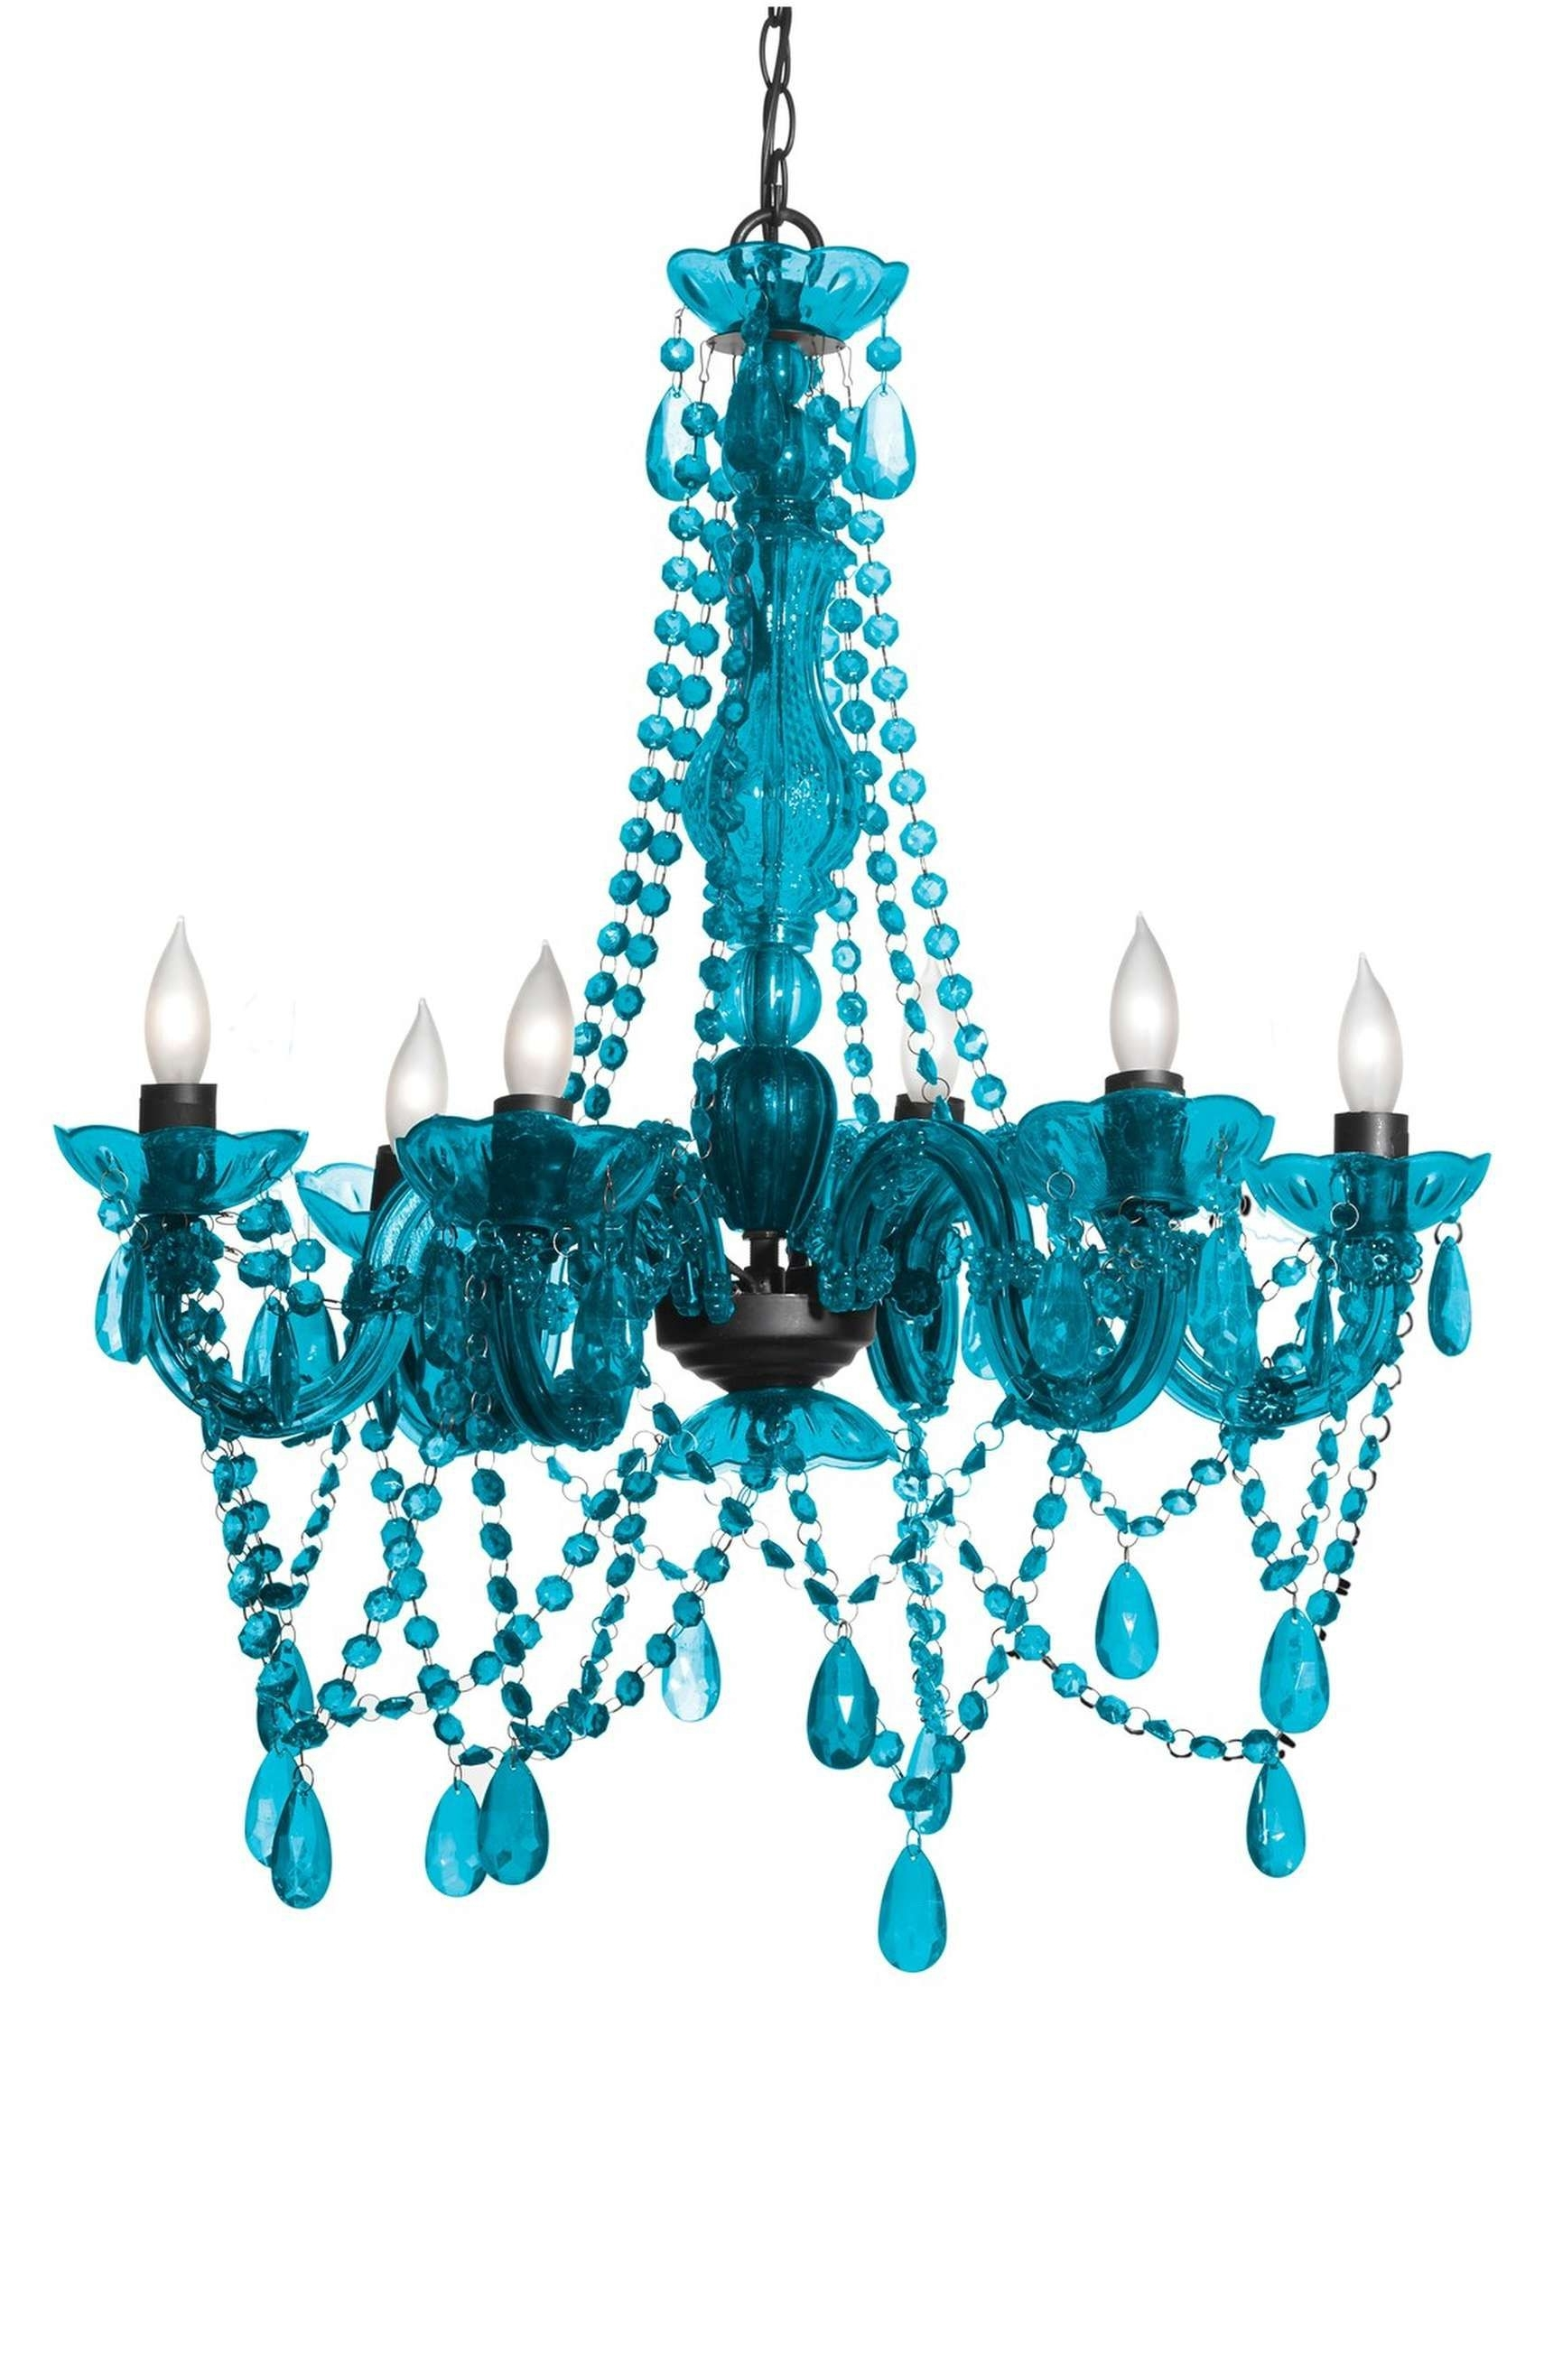 Latest Turquoise Chandelier Crystals Inside Crystal Chandelier Designs – Modern Chandeliers (View 9 of 15)